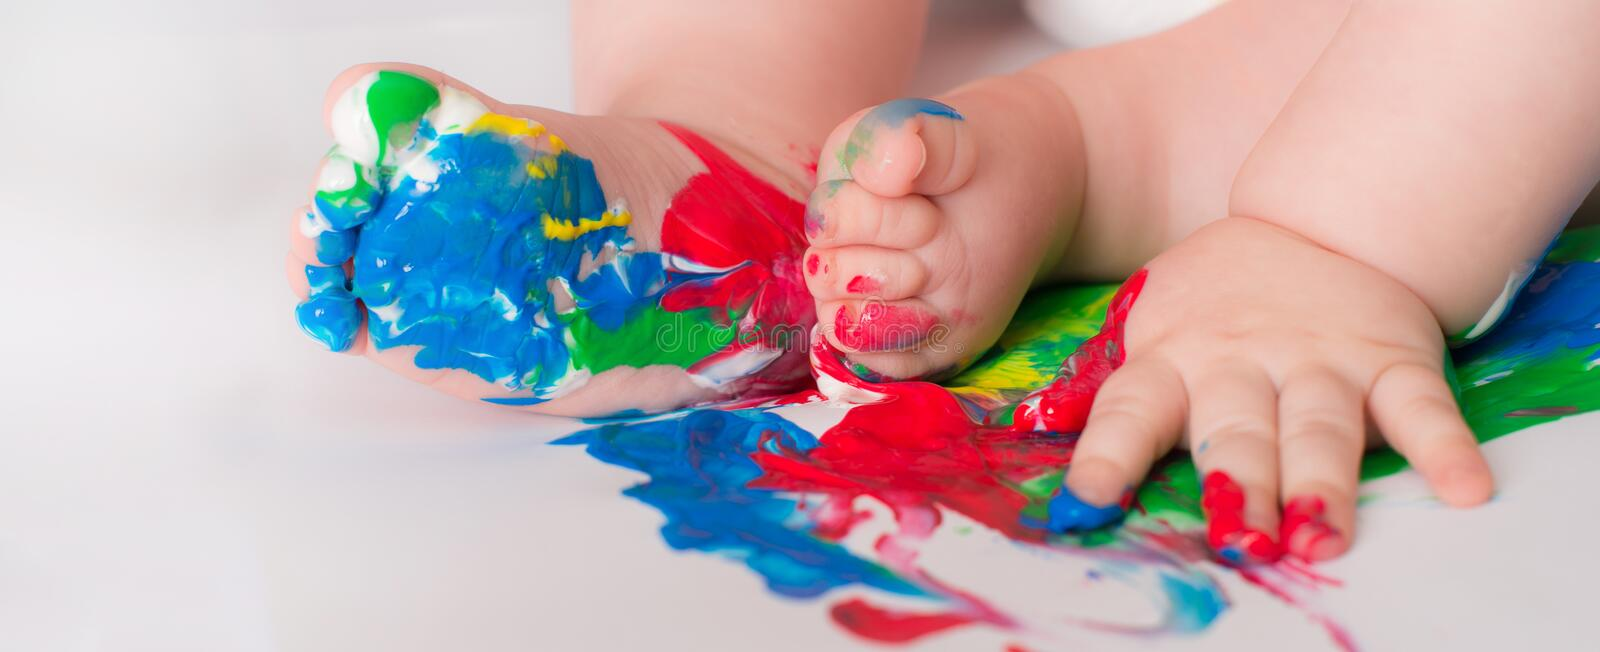 Baby child draws with colored paints hands, dirty feet. Selecti royalty free stock photo